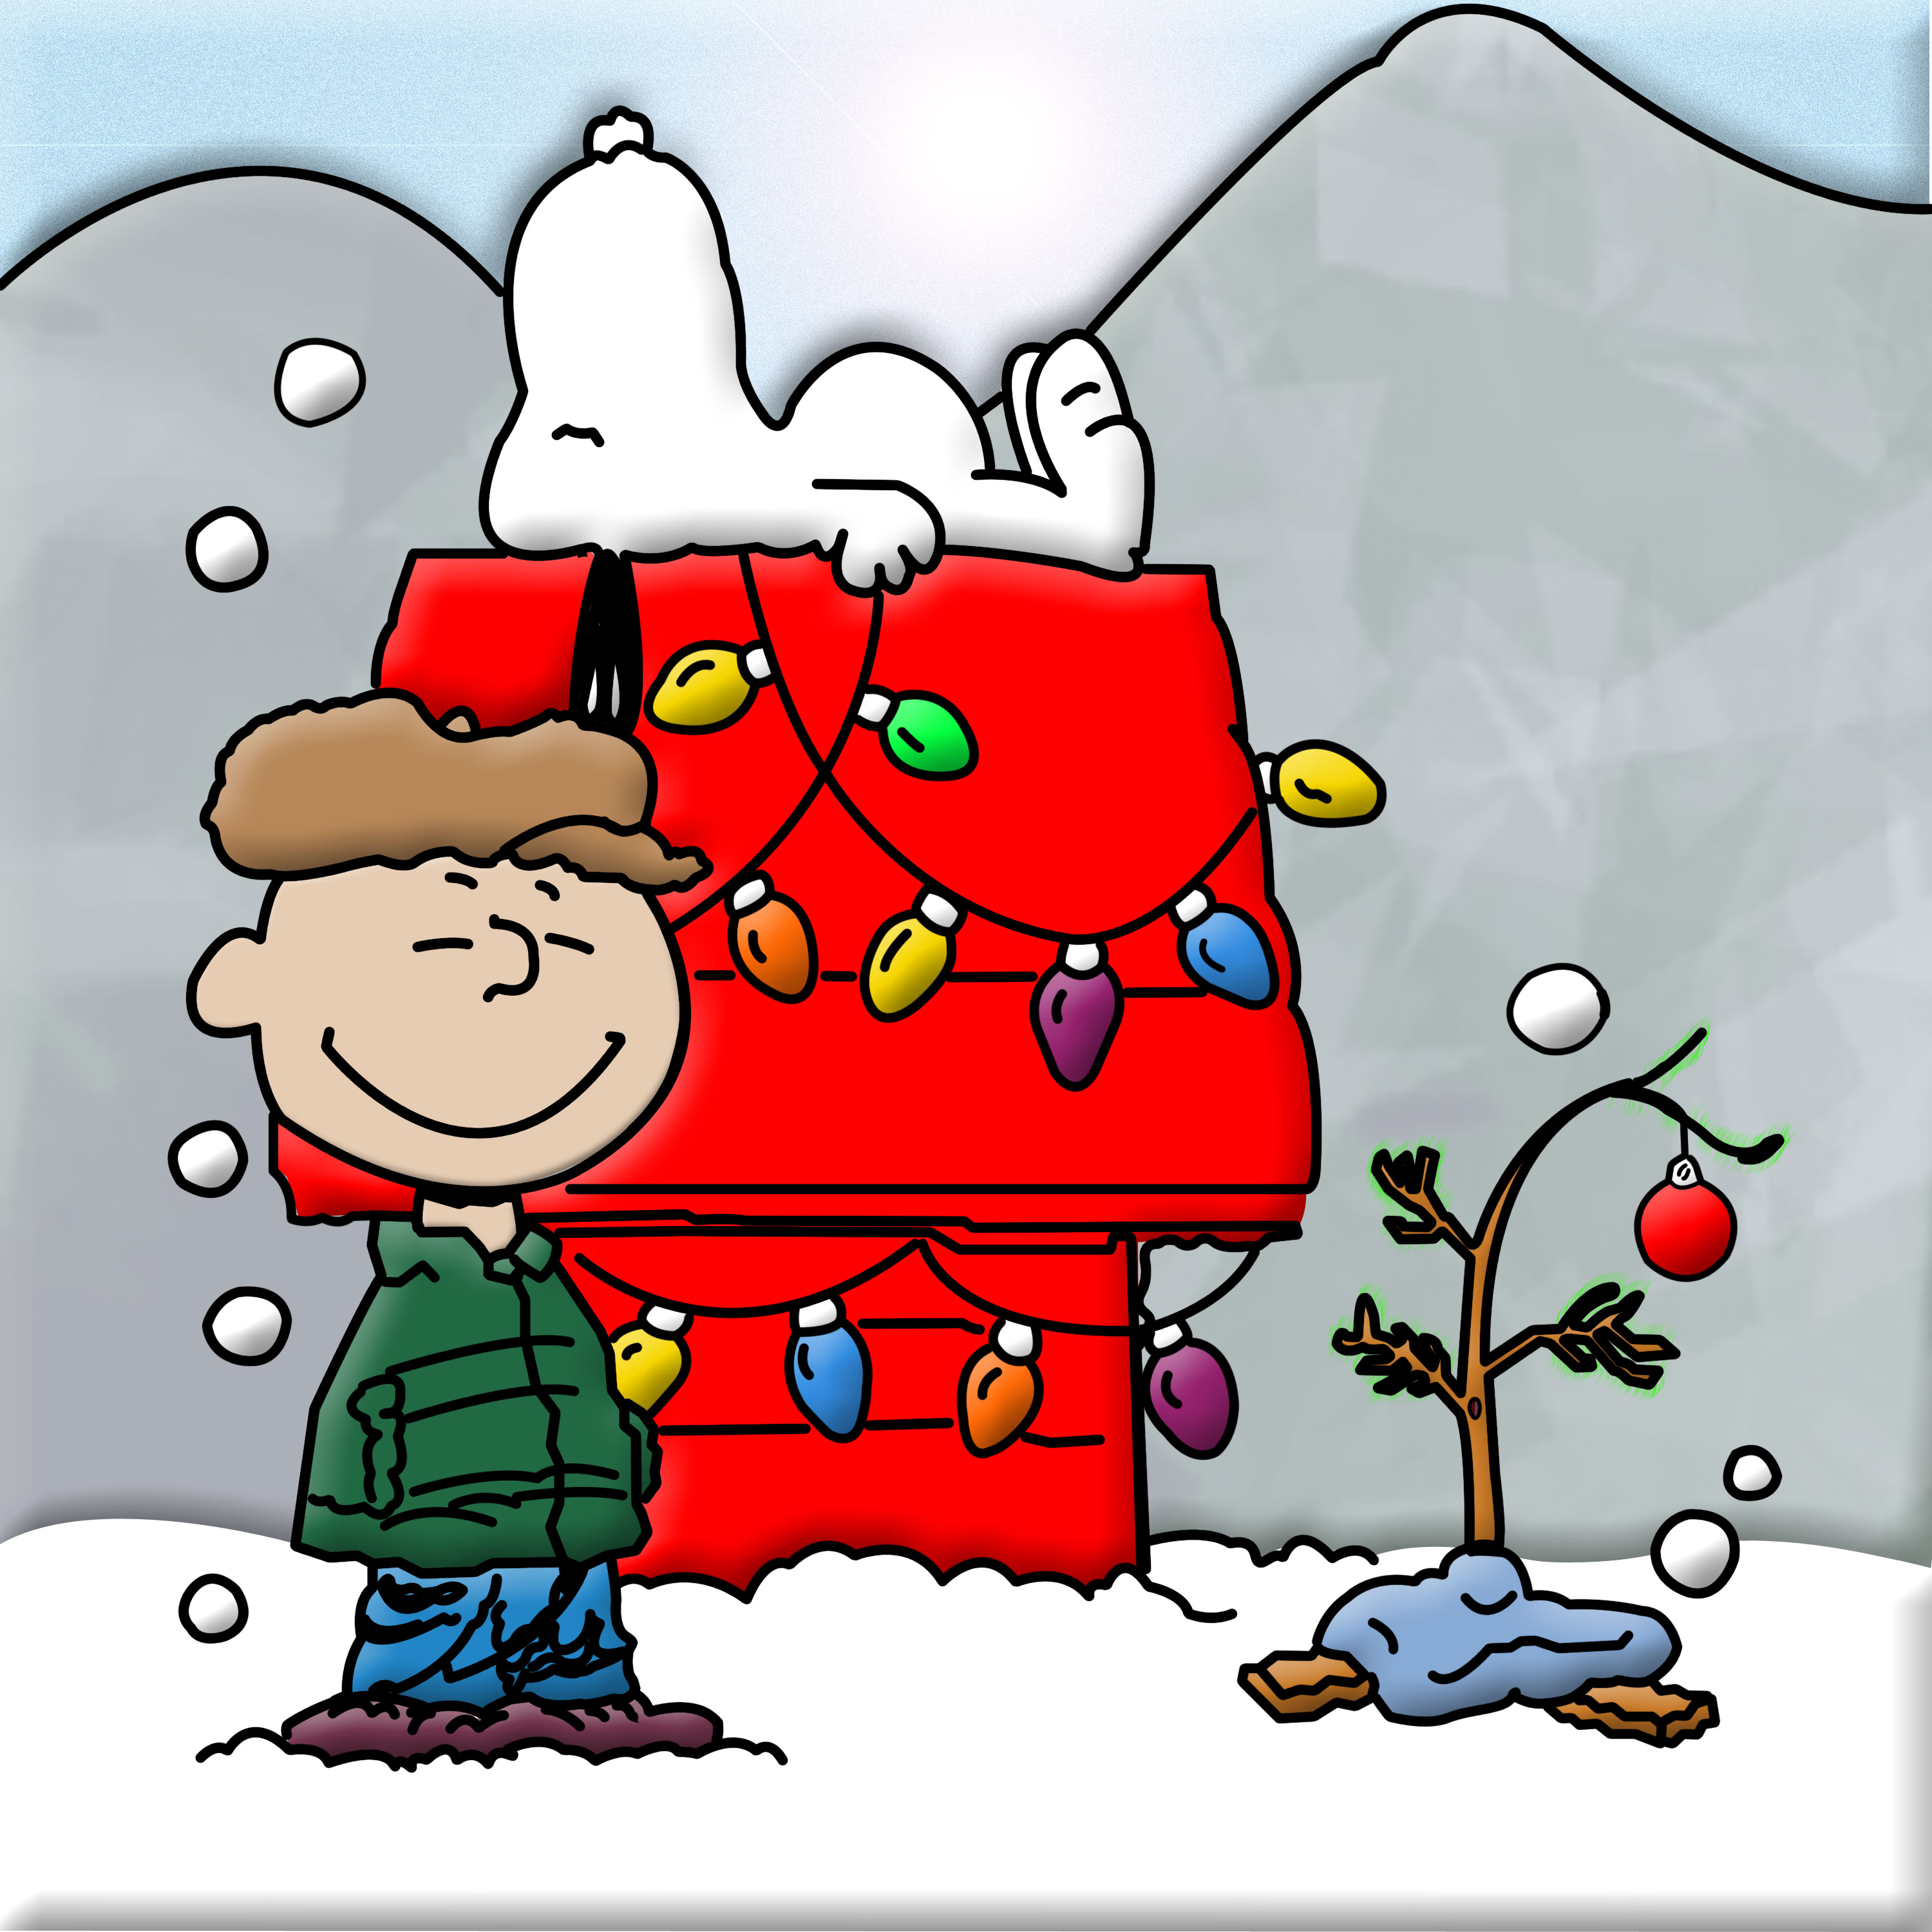 Snoopys Christmas.15 Snoopy Christmas Icons Images Snoopy And Charlie Brown